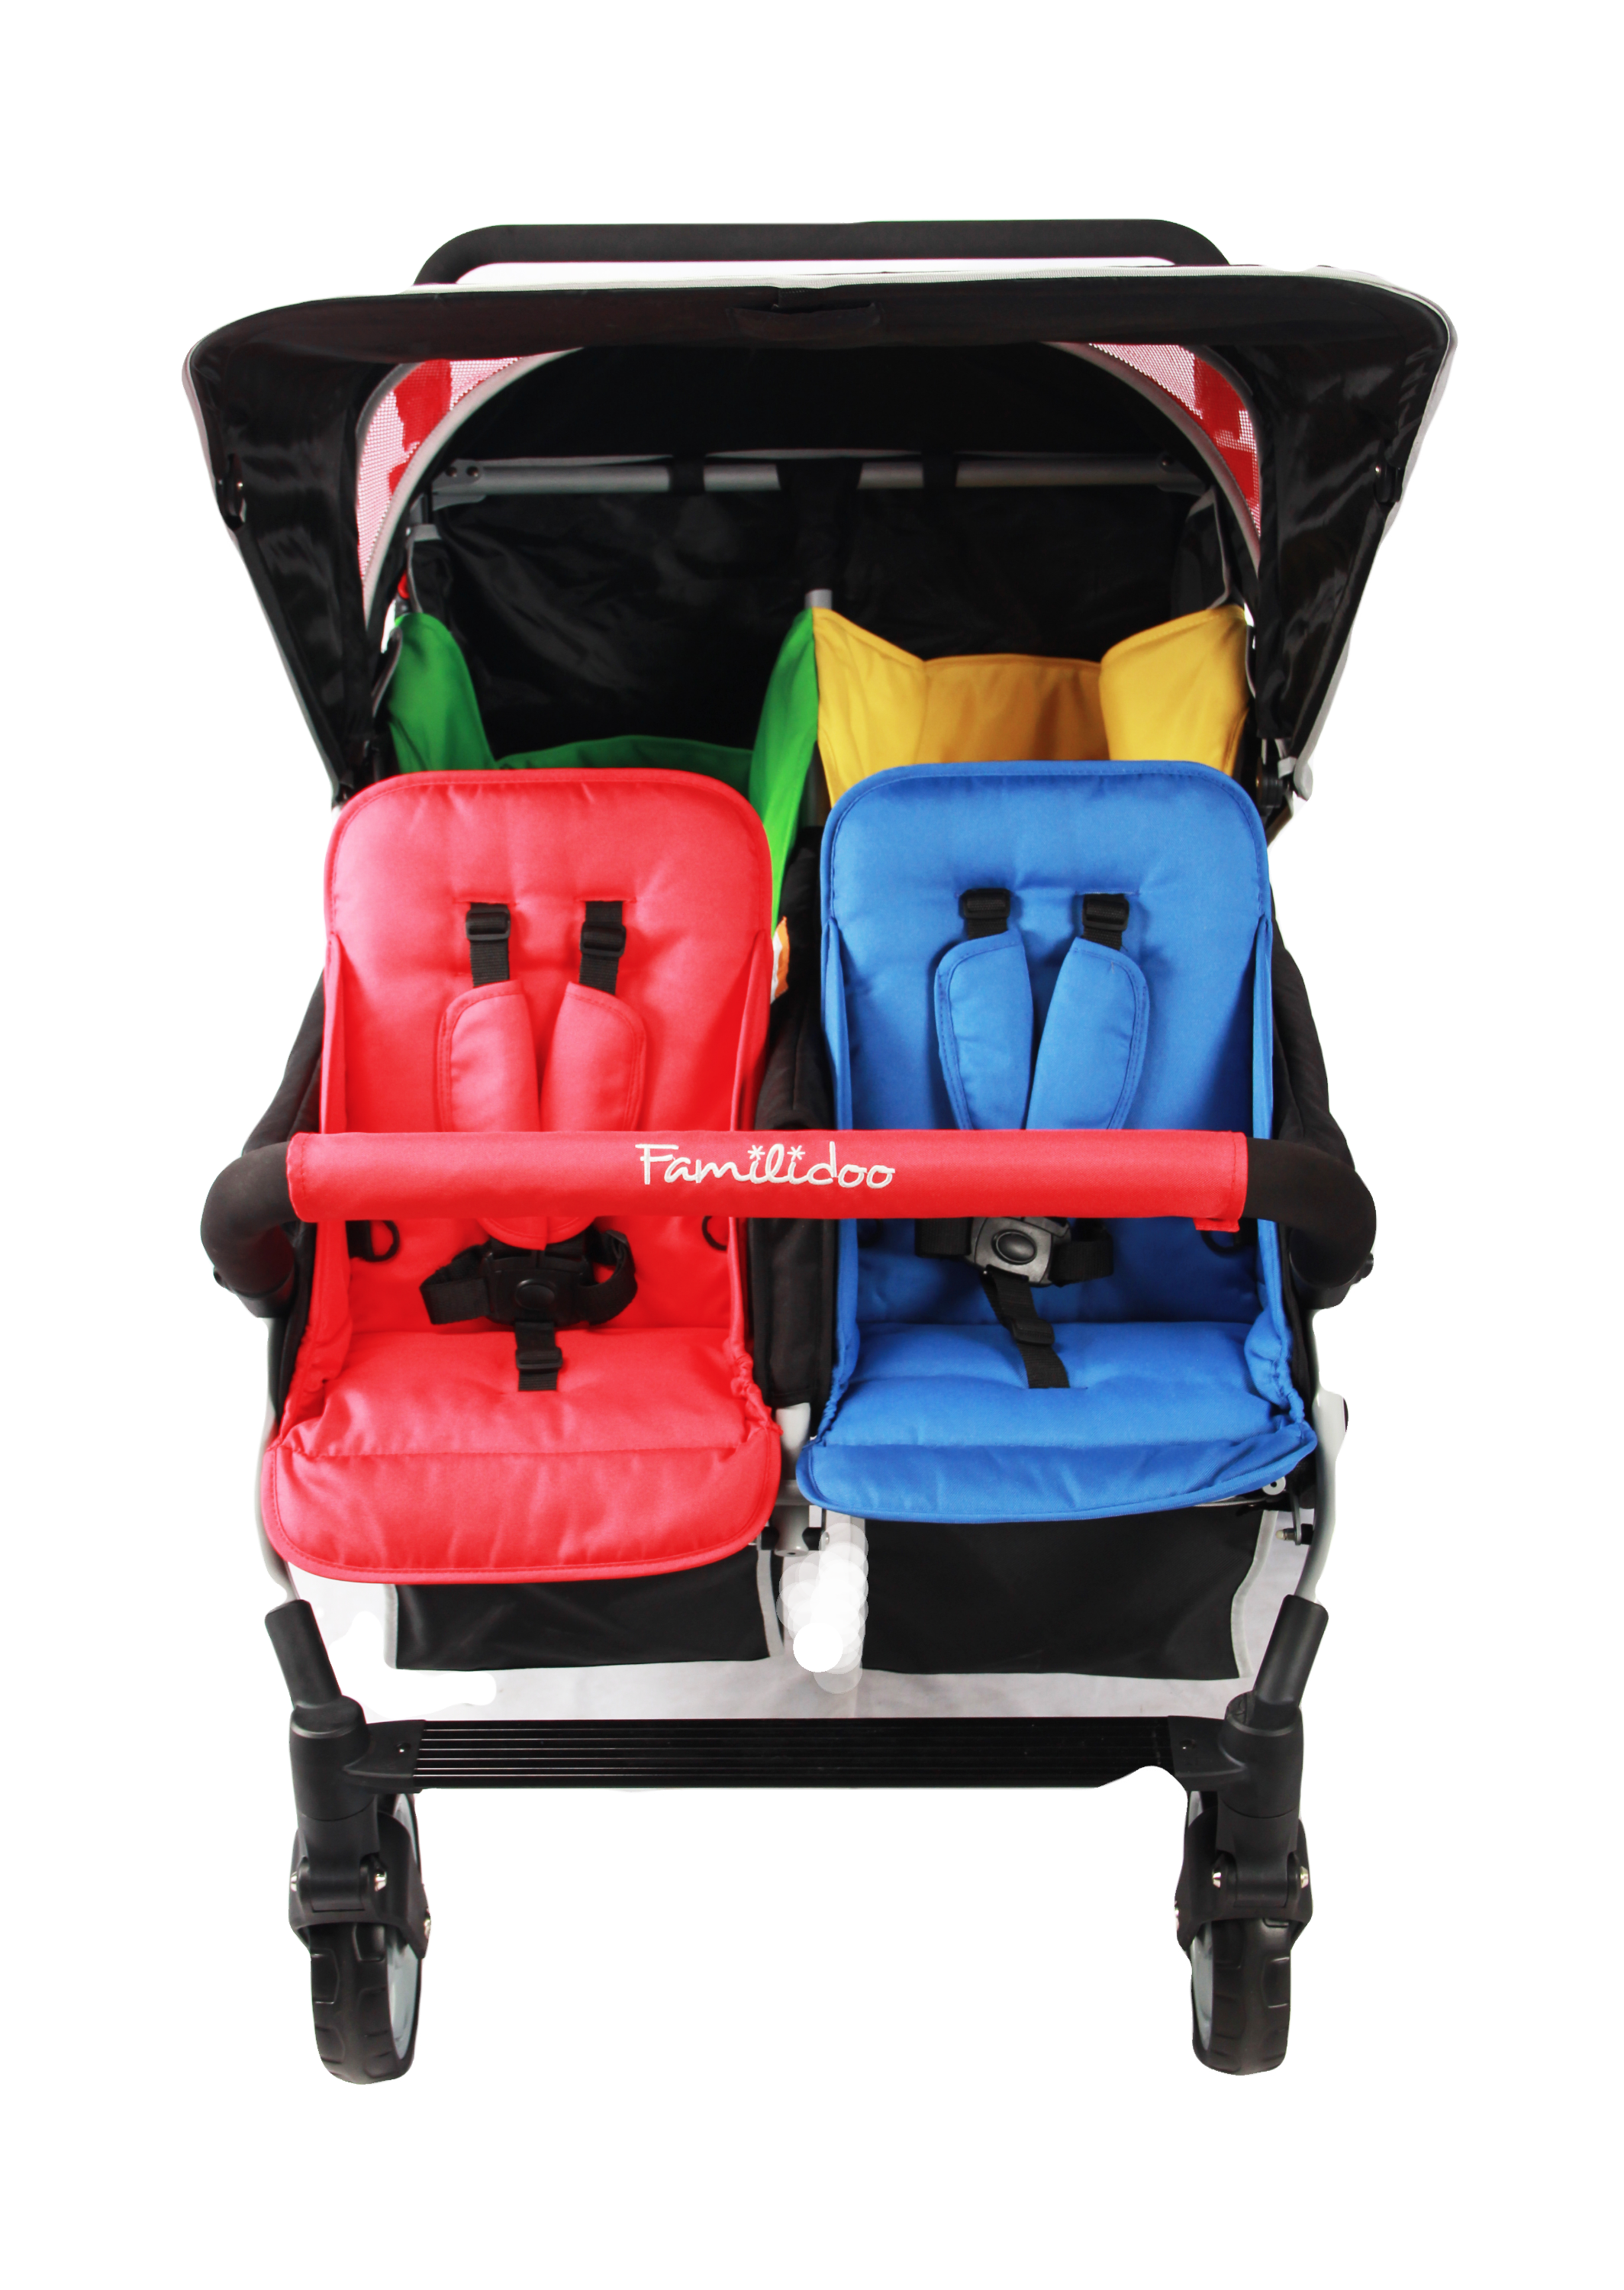 DSJ04FR-Familidoo-4 seater pushchair